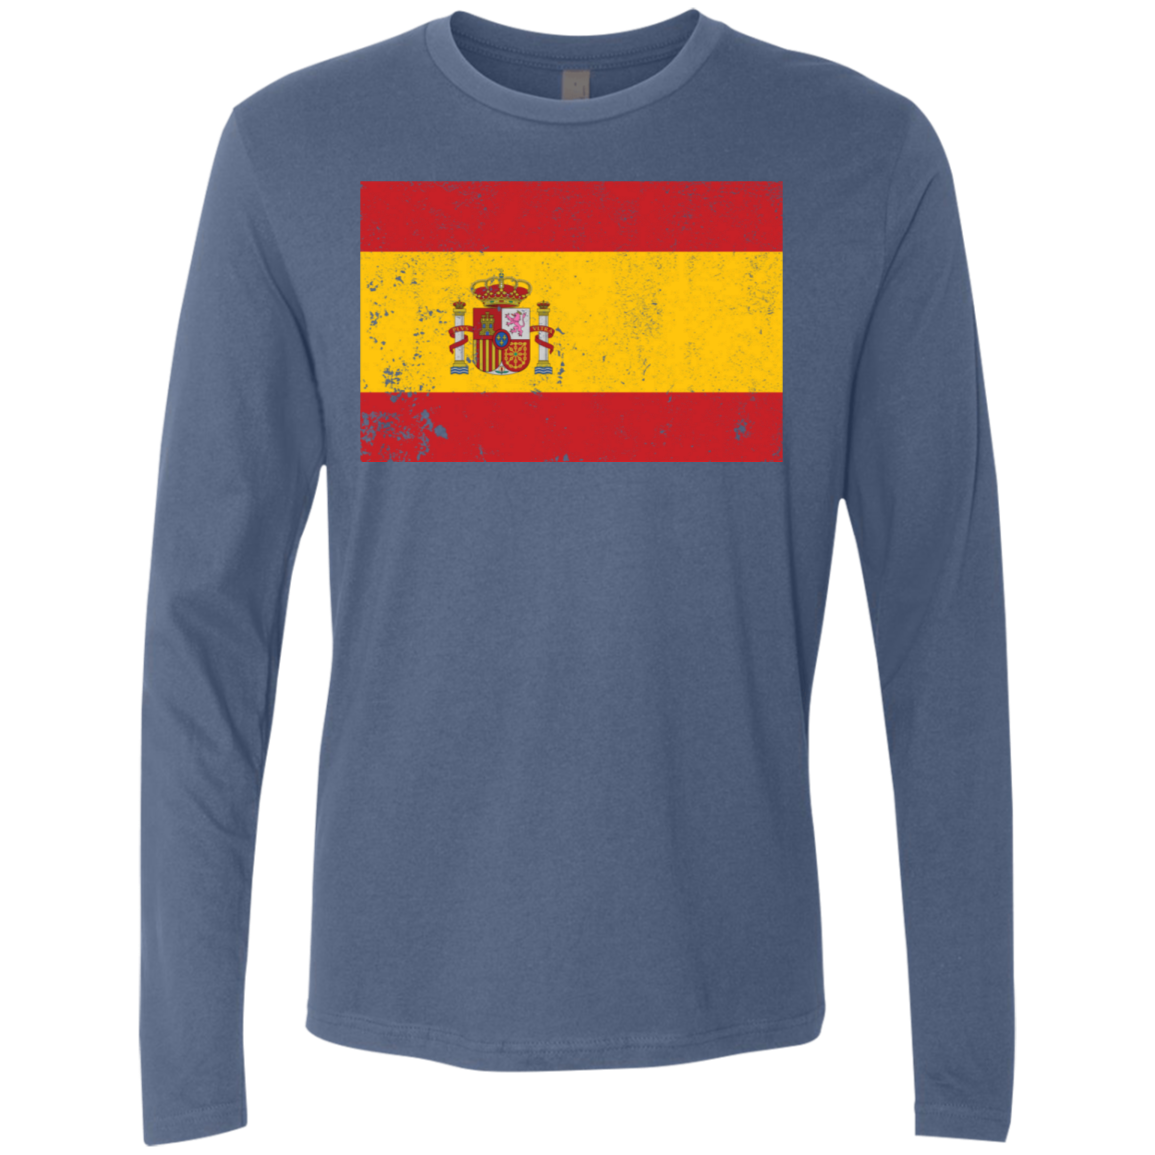 Spain Men's Long Sleeve Tee